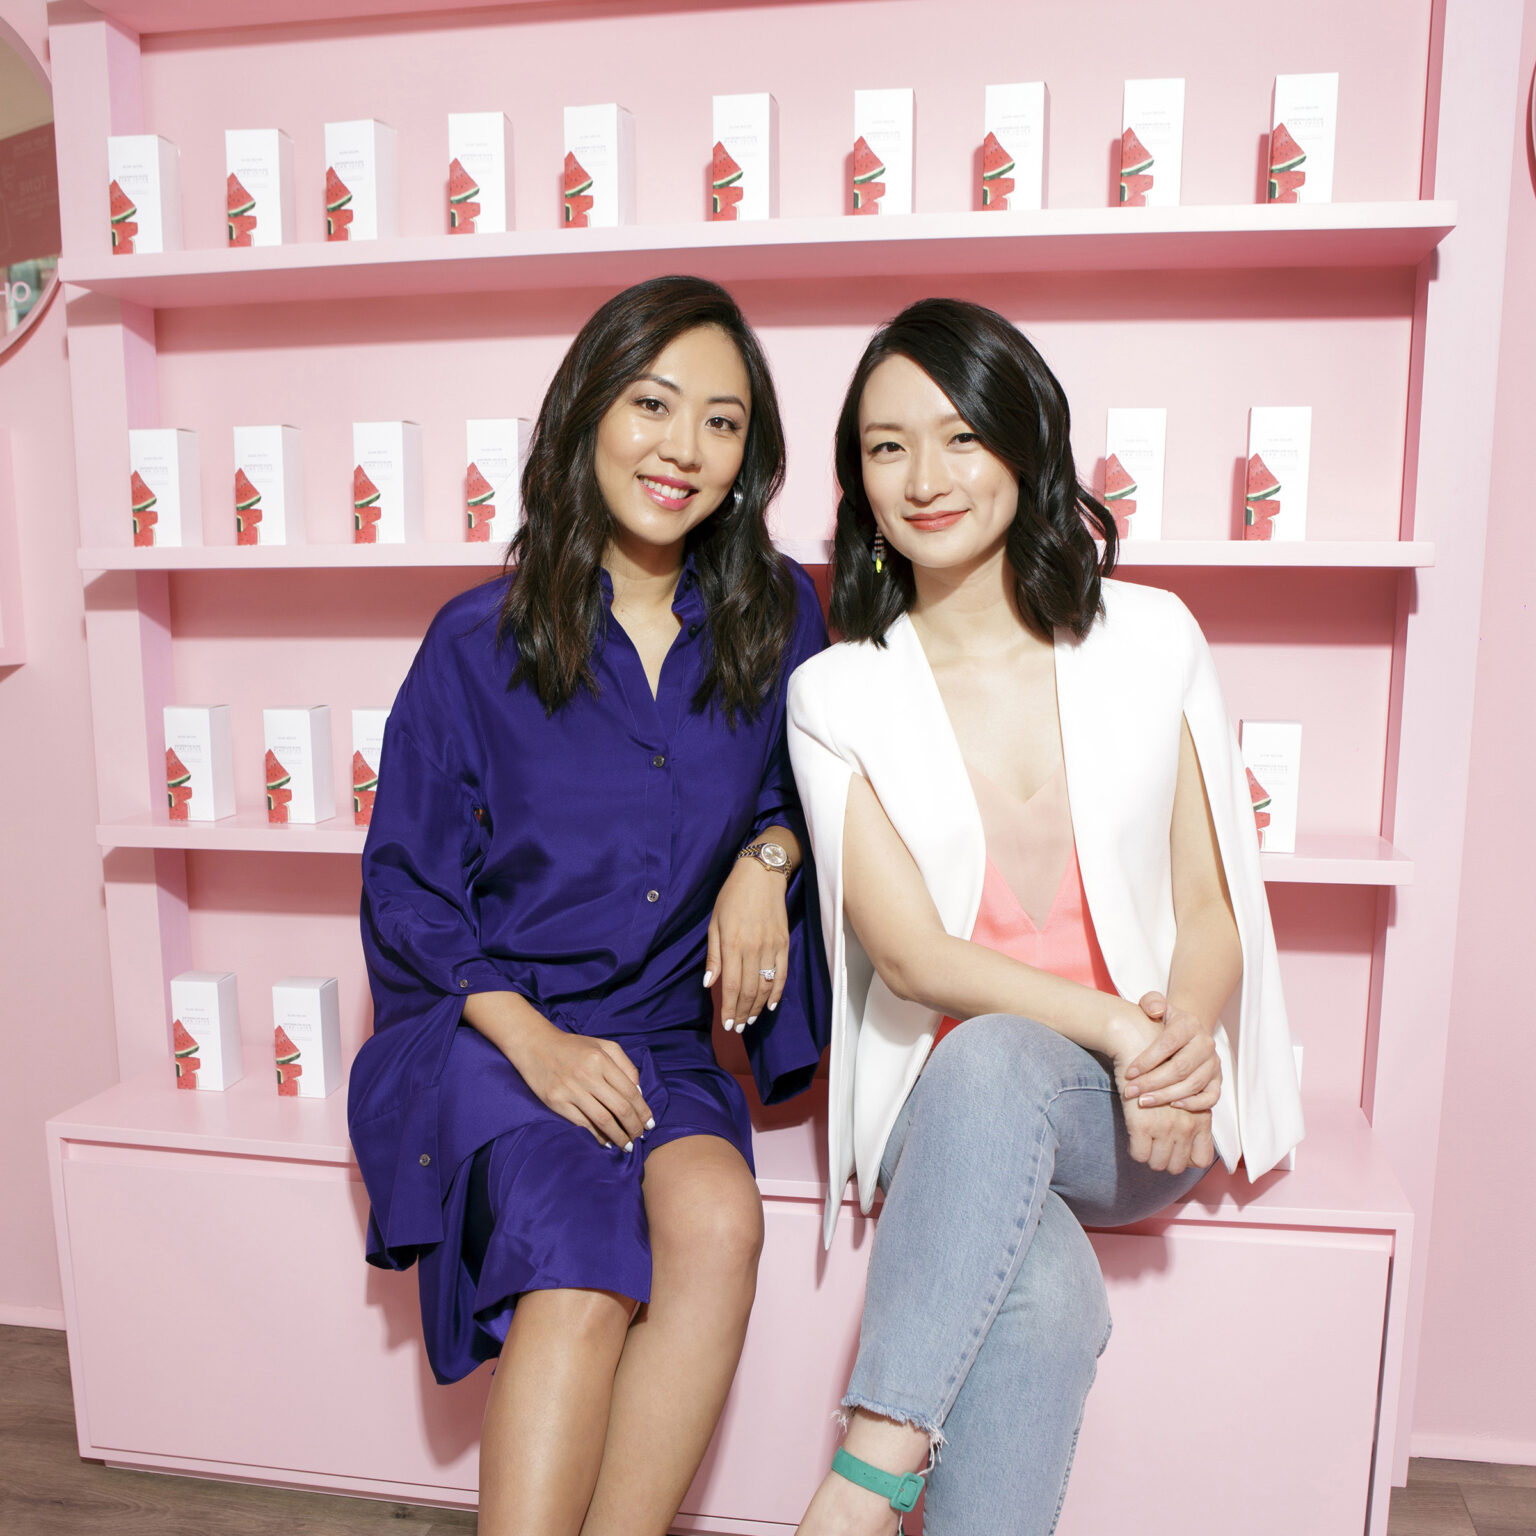 Sarah Lee Left and Christine Chang on the right